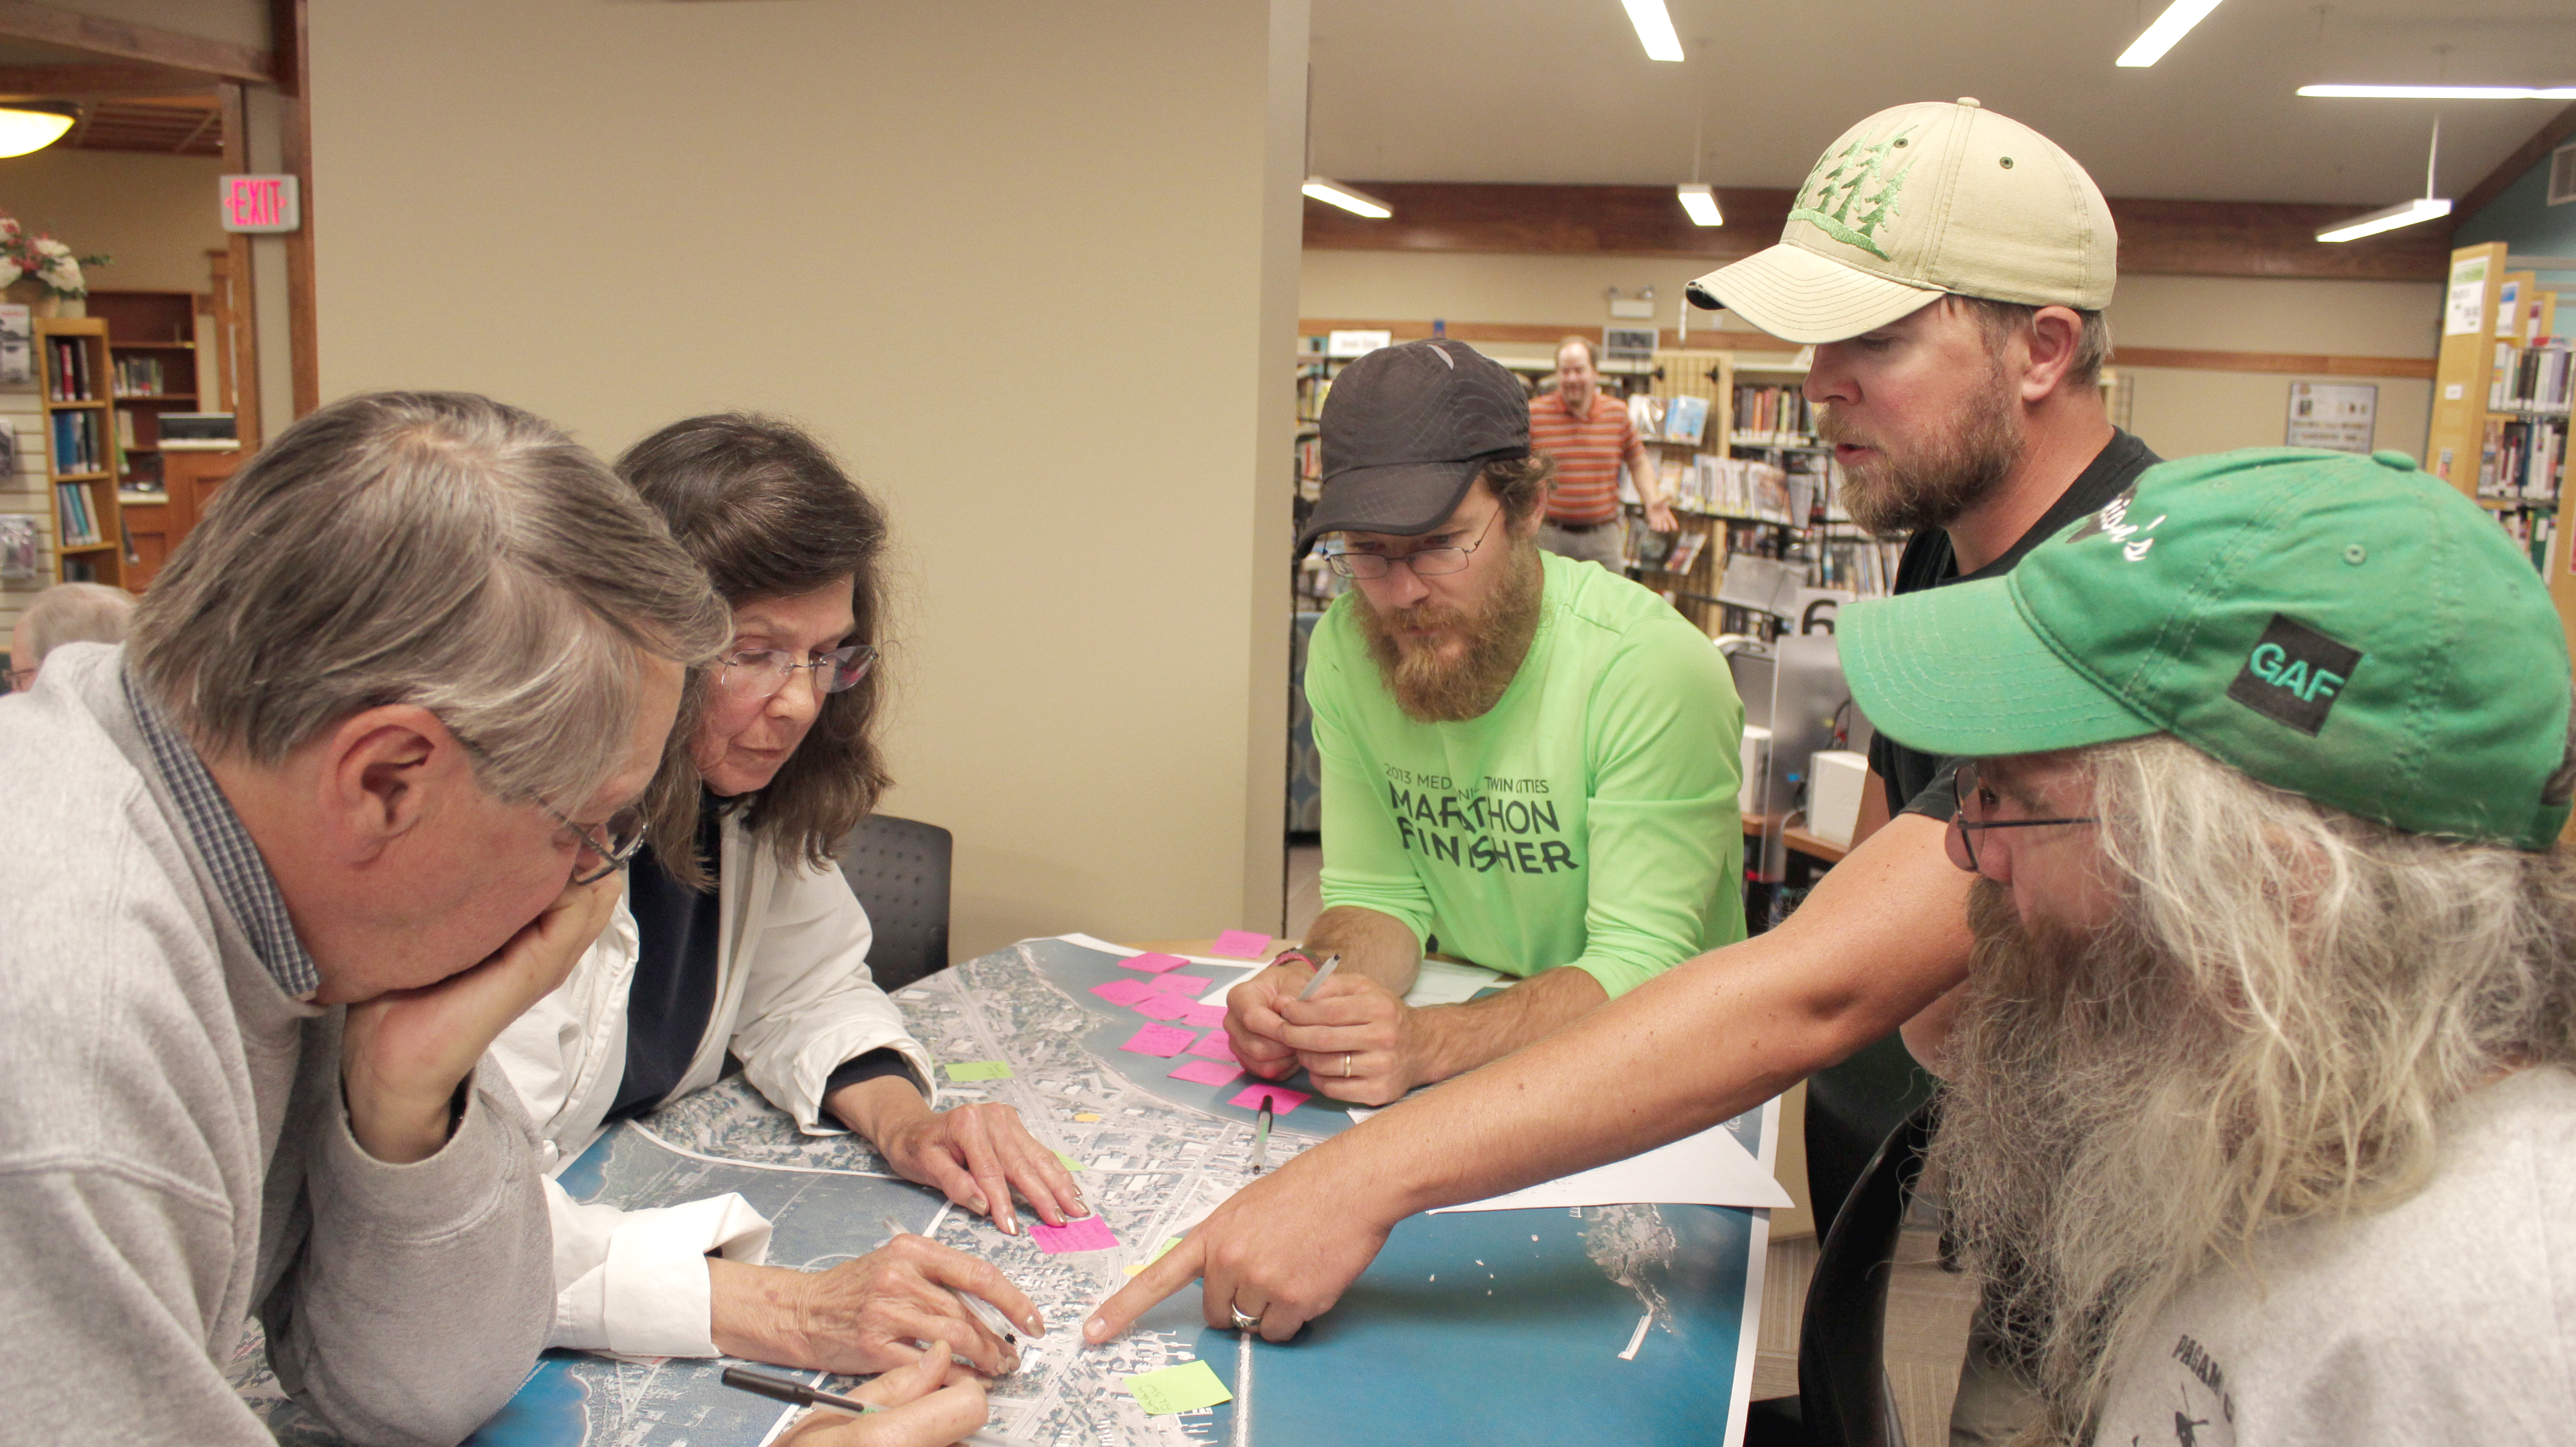 A group of people engaged in a discussion around a table with a map on it